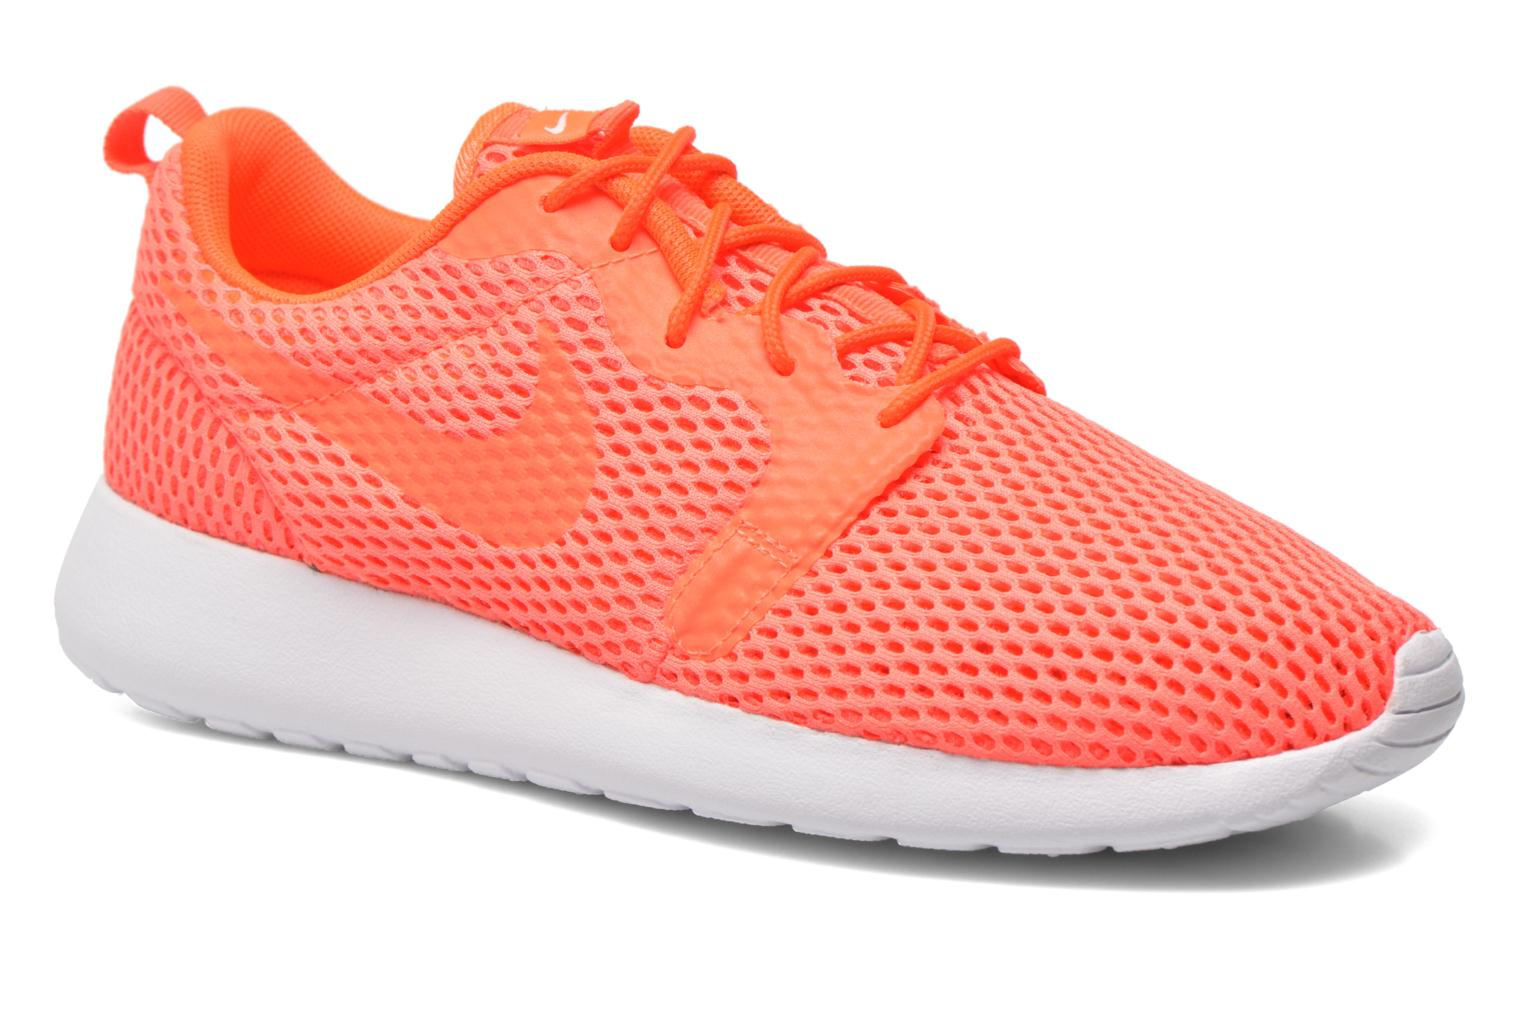 Nike Roshe One Hyp Br Total Crimson/Ttl Crmsn-White